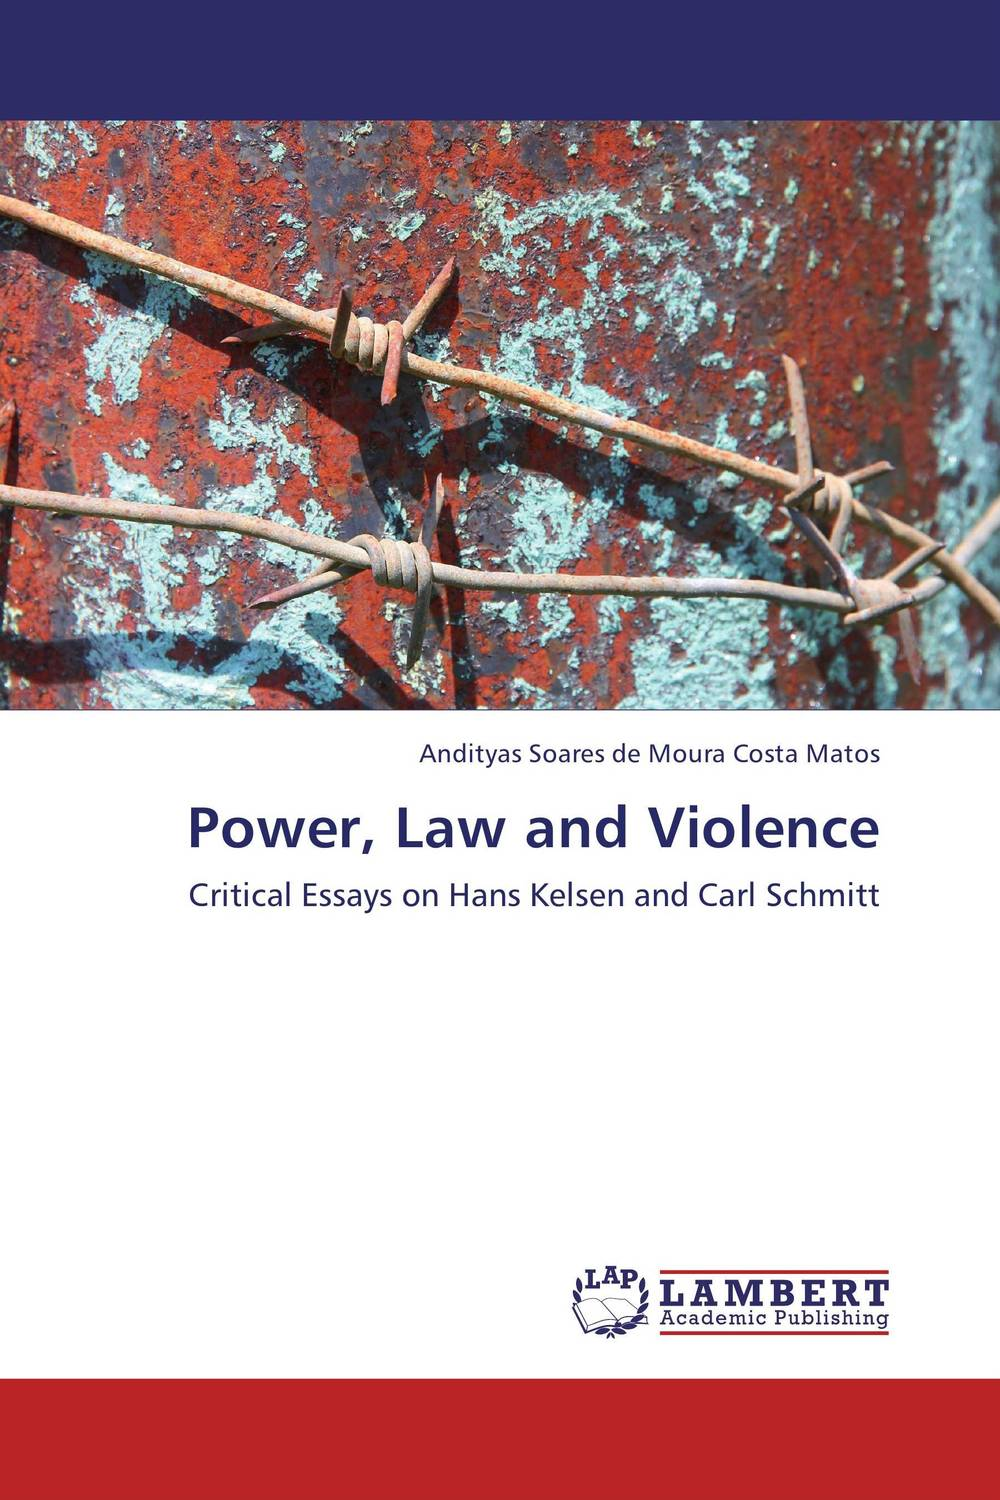 Power, Law and Violence